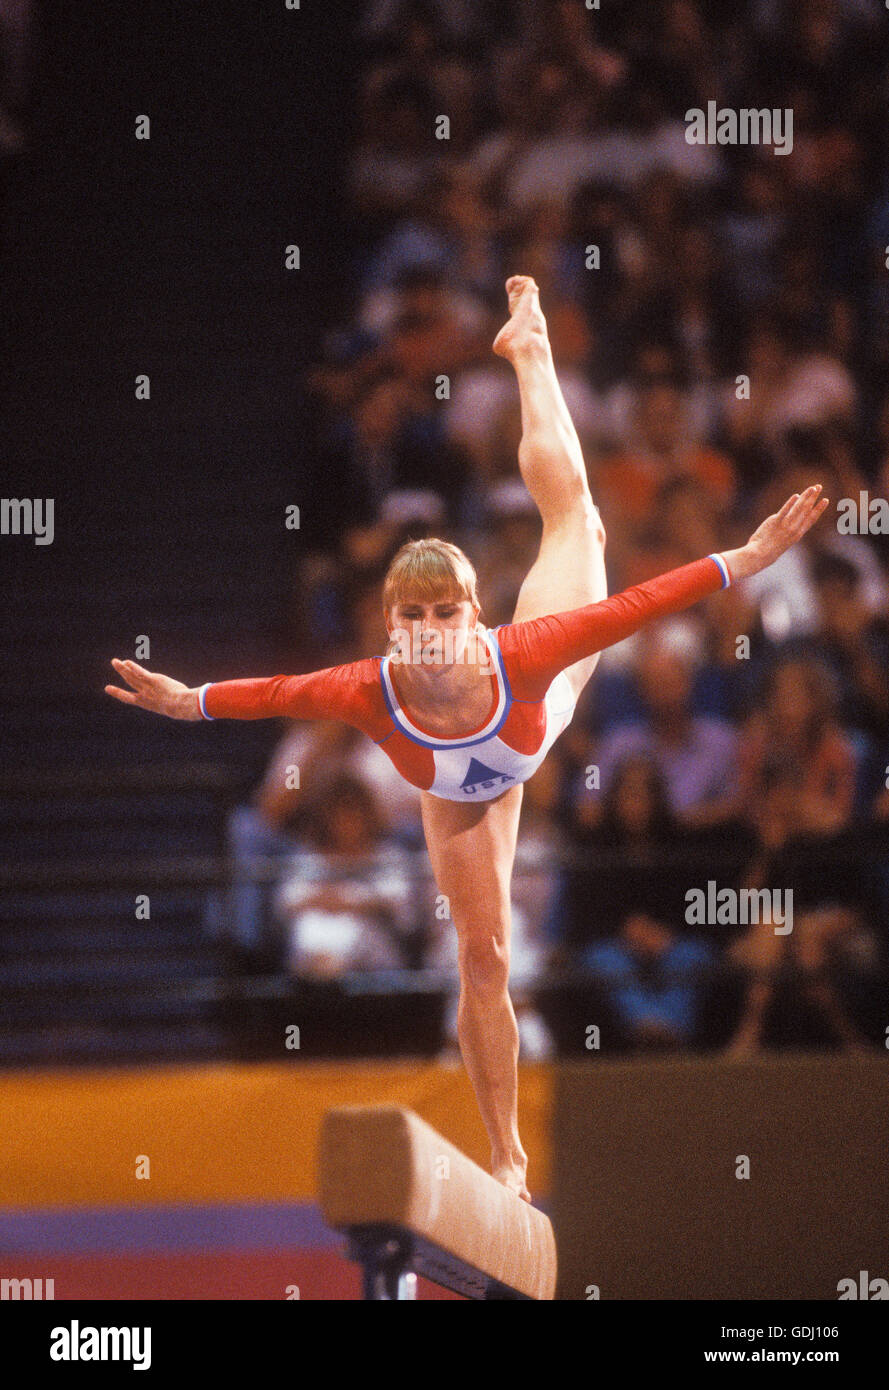 Kathy Johnson of USA performs on women's balance beam during competition at 1984 Olympic Games in Los Angeles. - Stock Image